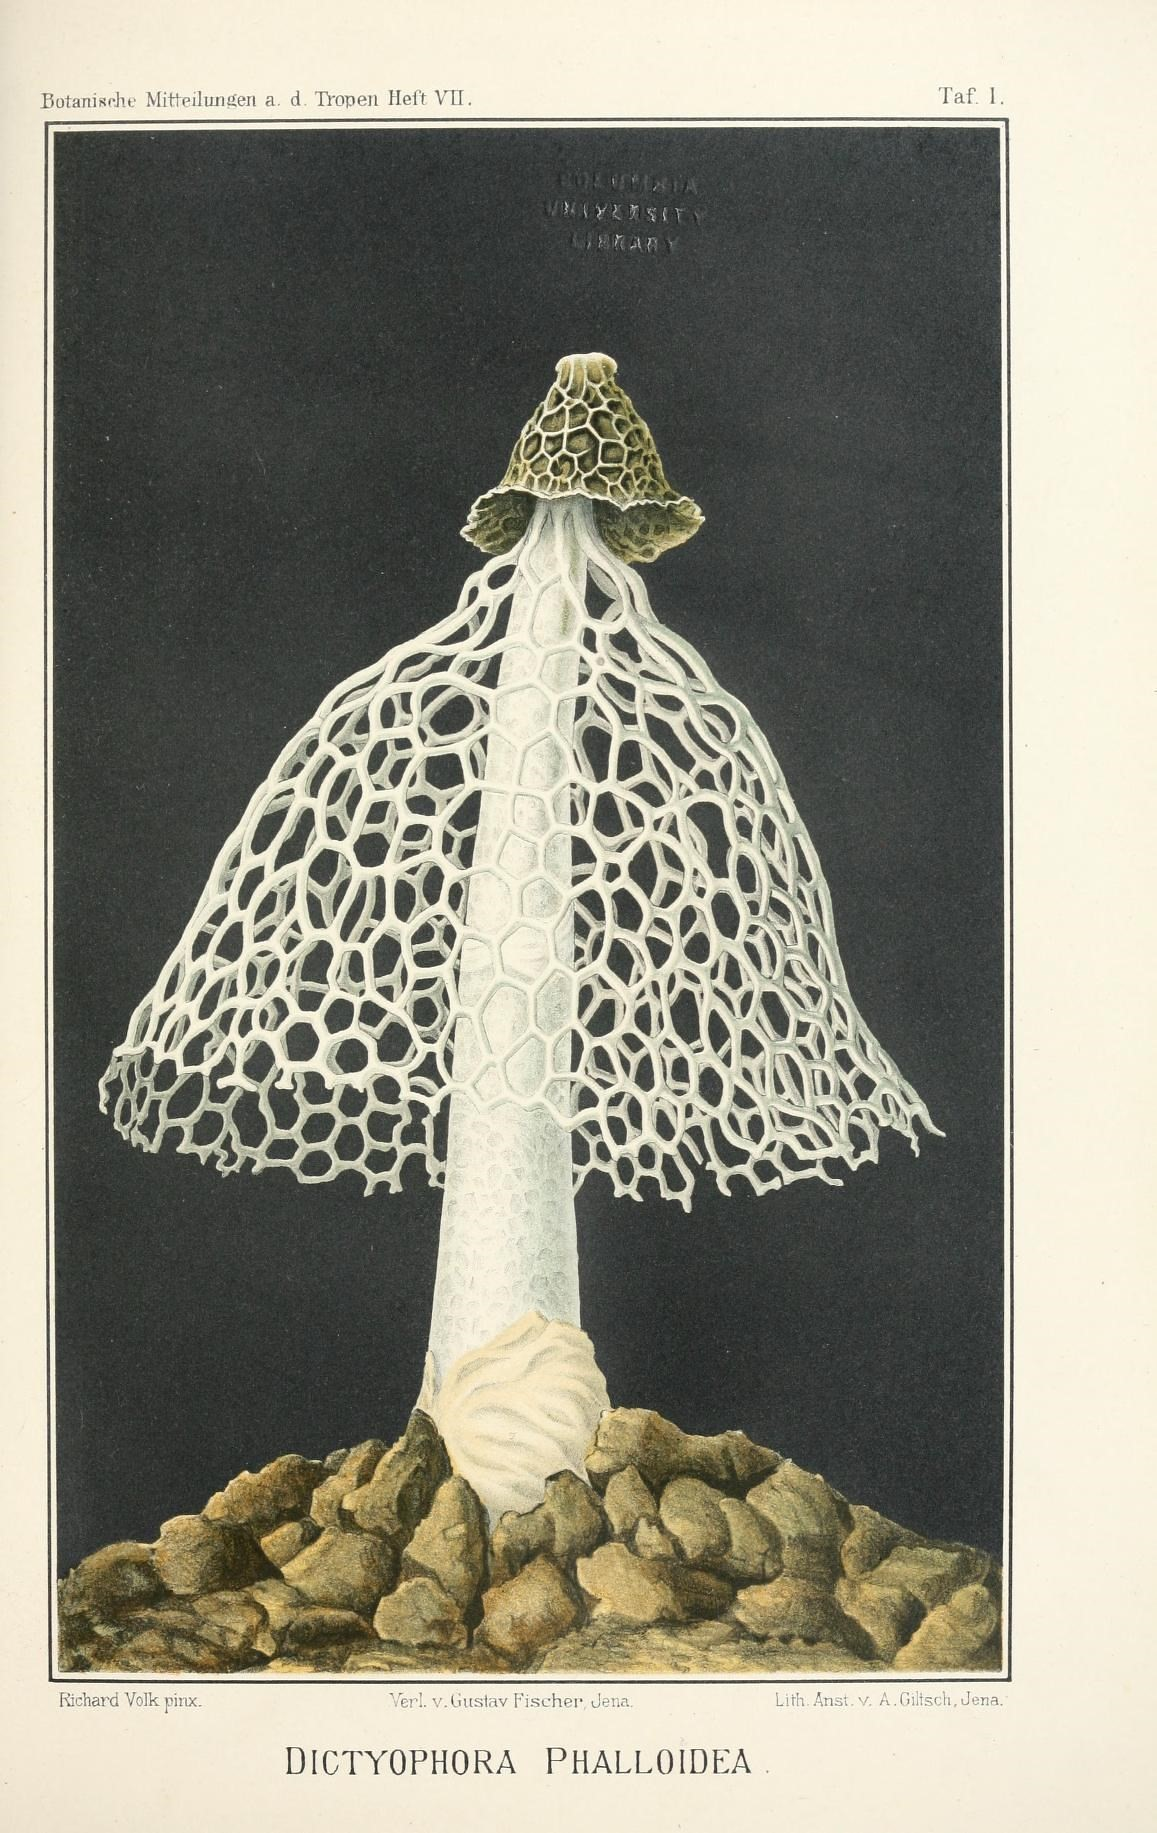 illustration of fungi with an indusium.